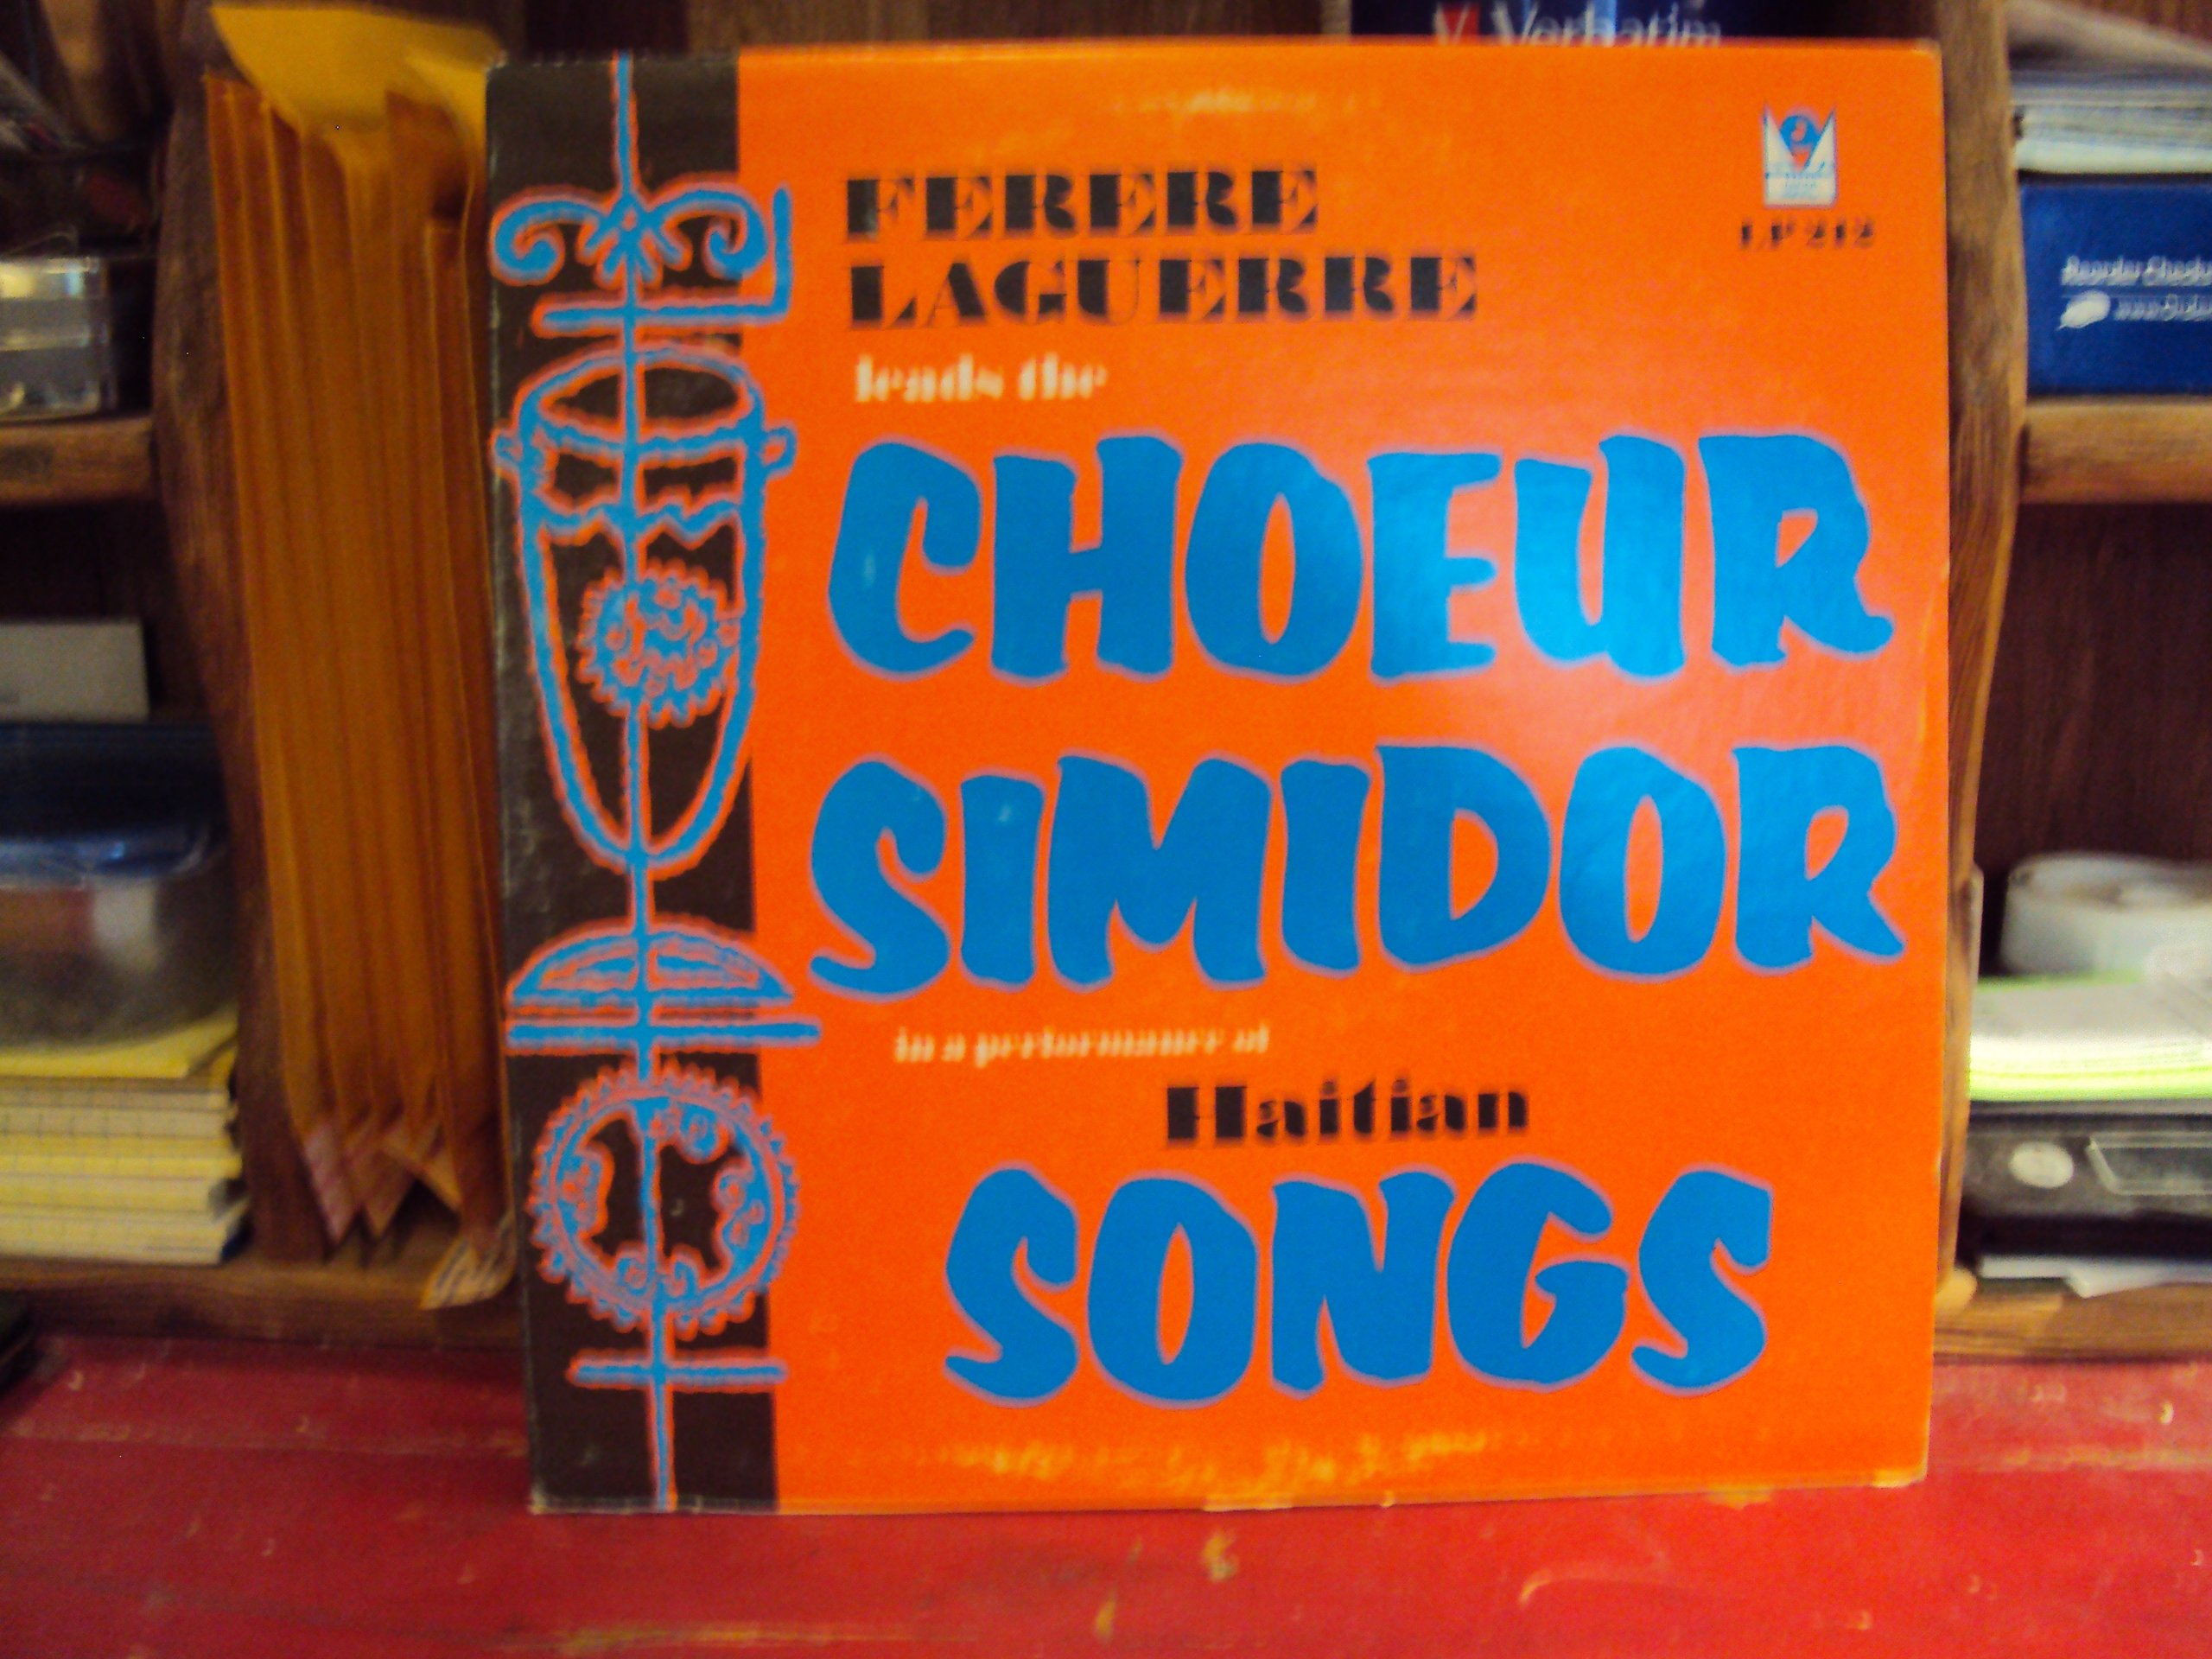 Ferere Laguerre Leads The Choeur Simidor in a Performance of Haitian Songs by Marc Records